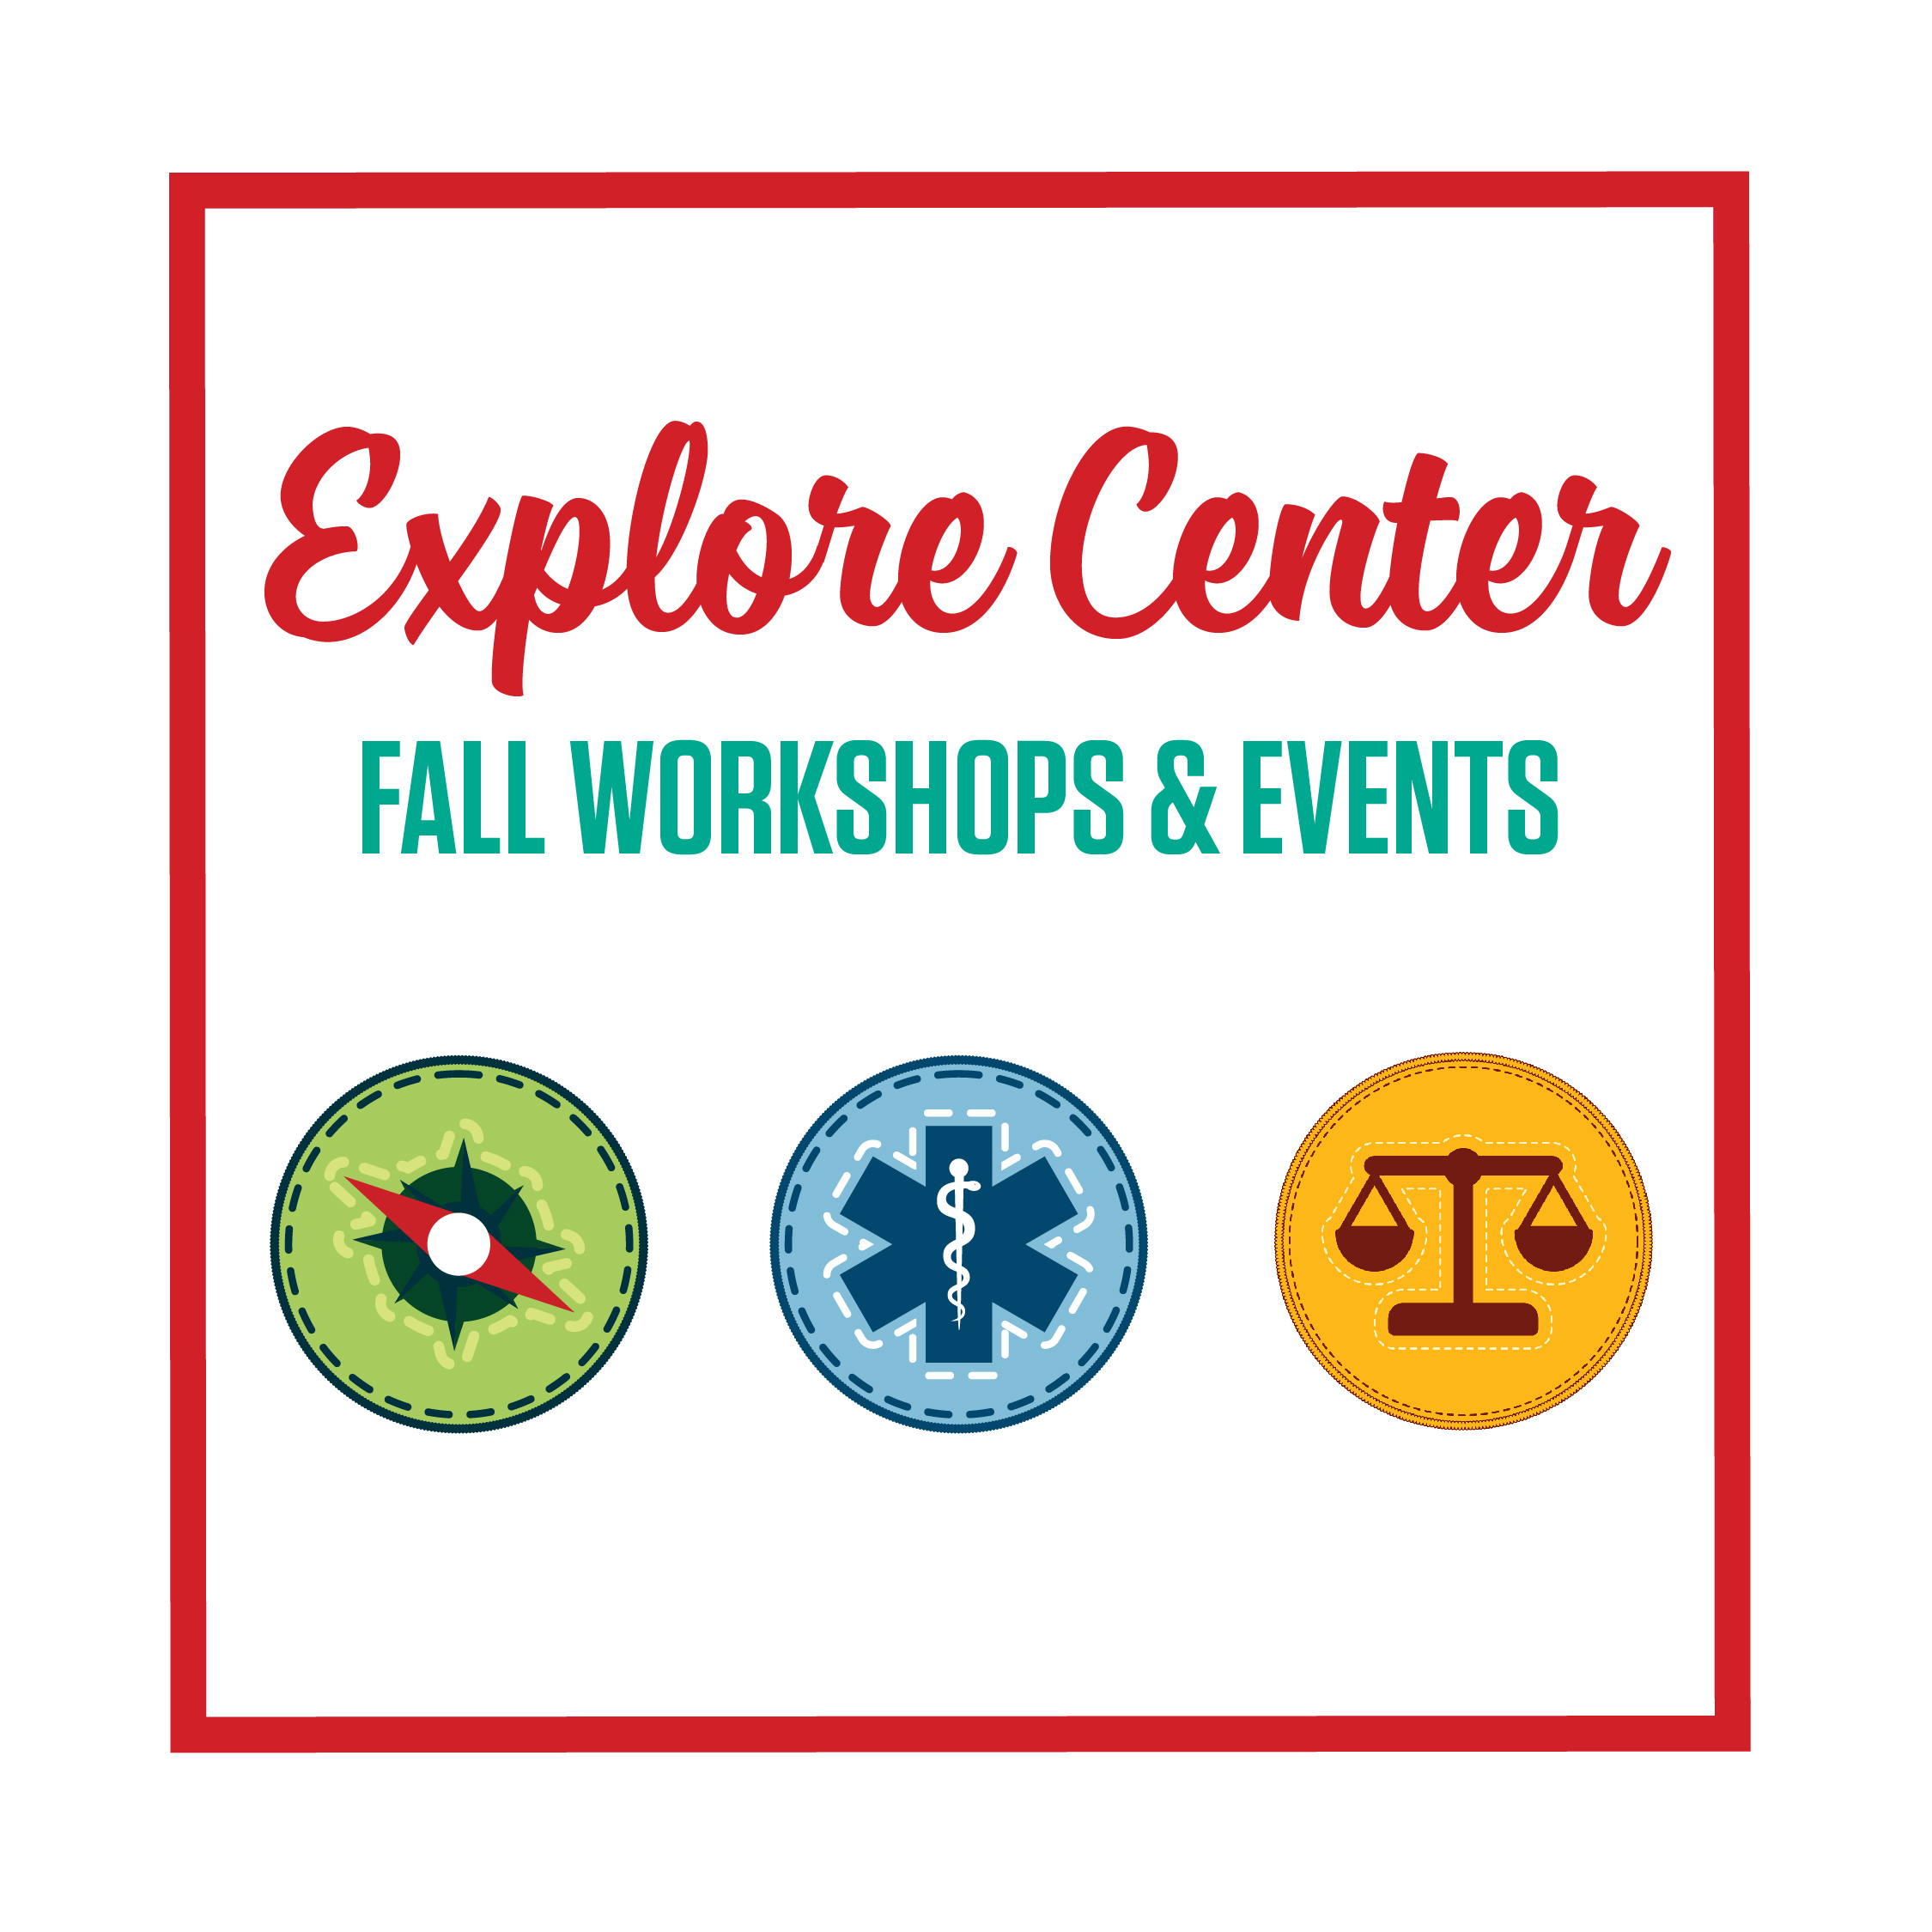 Explore Center Workshops